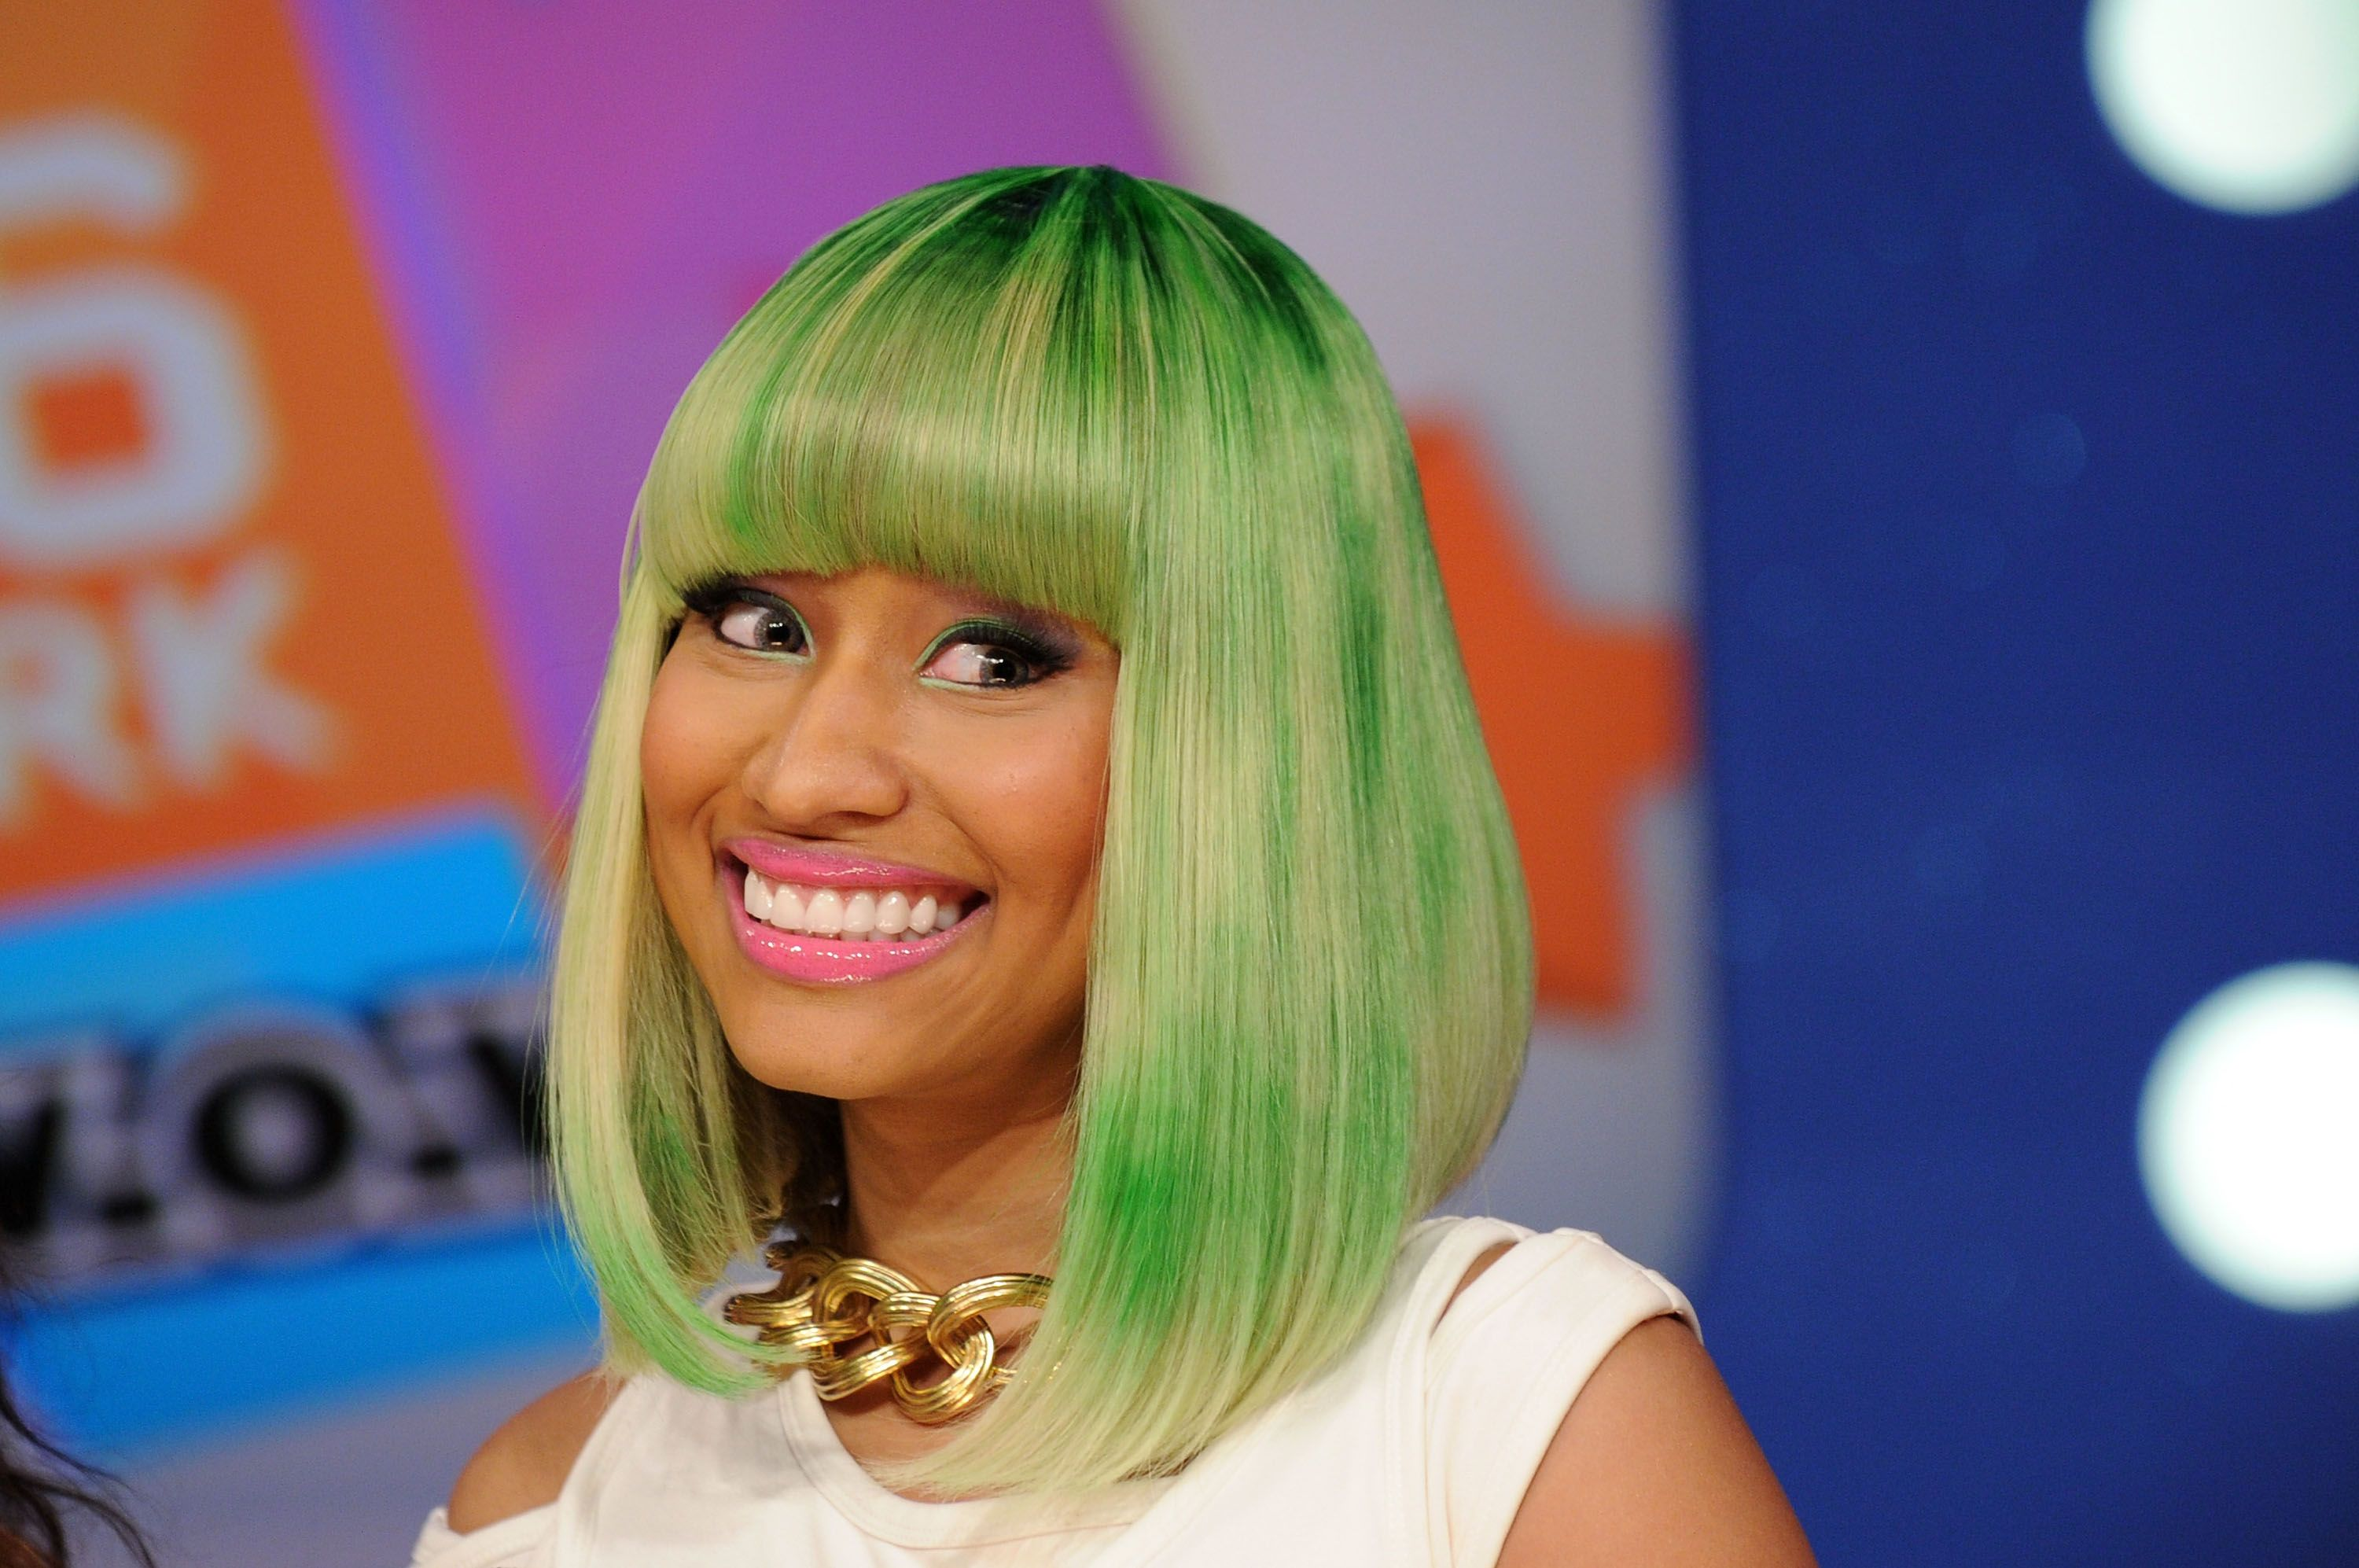 Nicki Minaj during BET's 106 & Park at BET Studios on March 31, 2010 in New York City. | Source: Getty Images